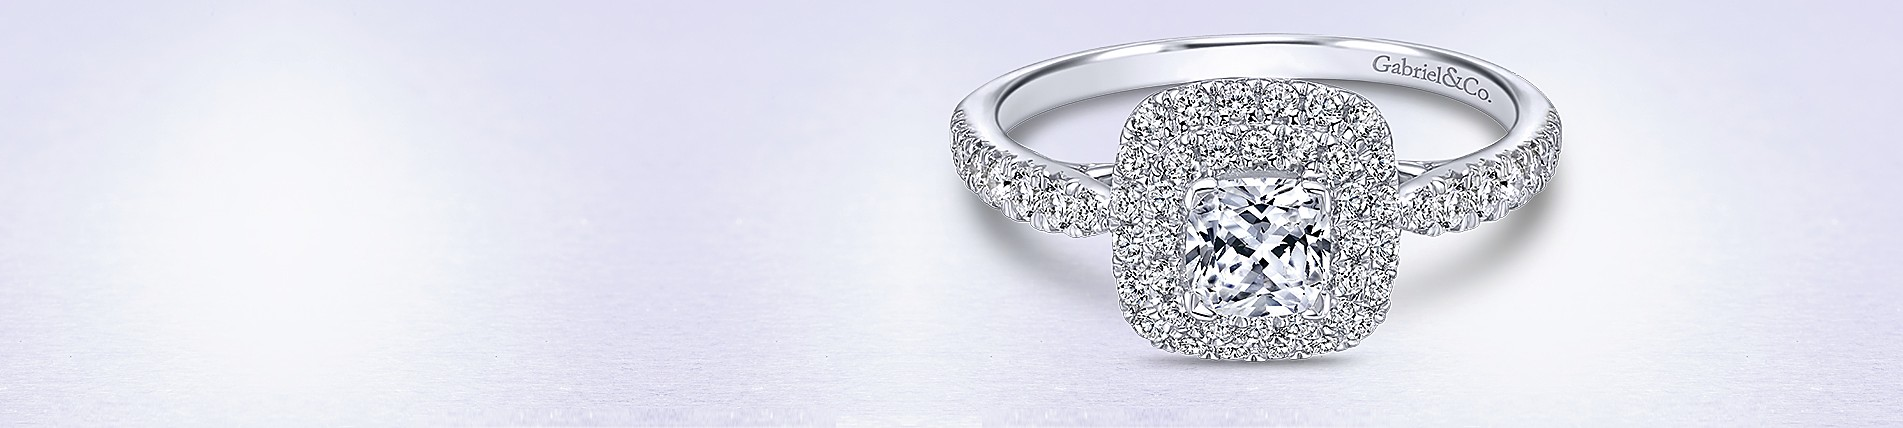 nl rings diamond wg gold with set ring cut wedding inline halo in jewelry pave white cushion delicate engagement prong